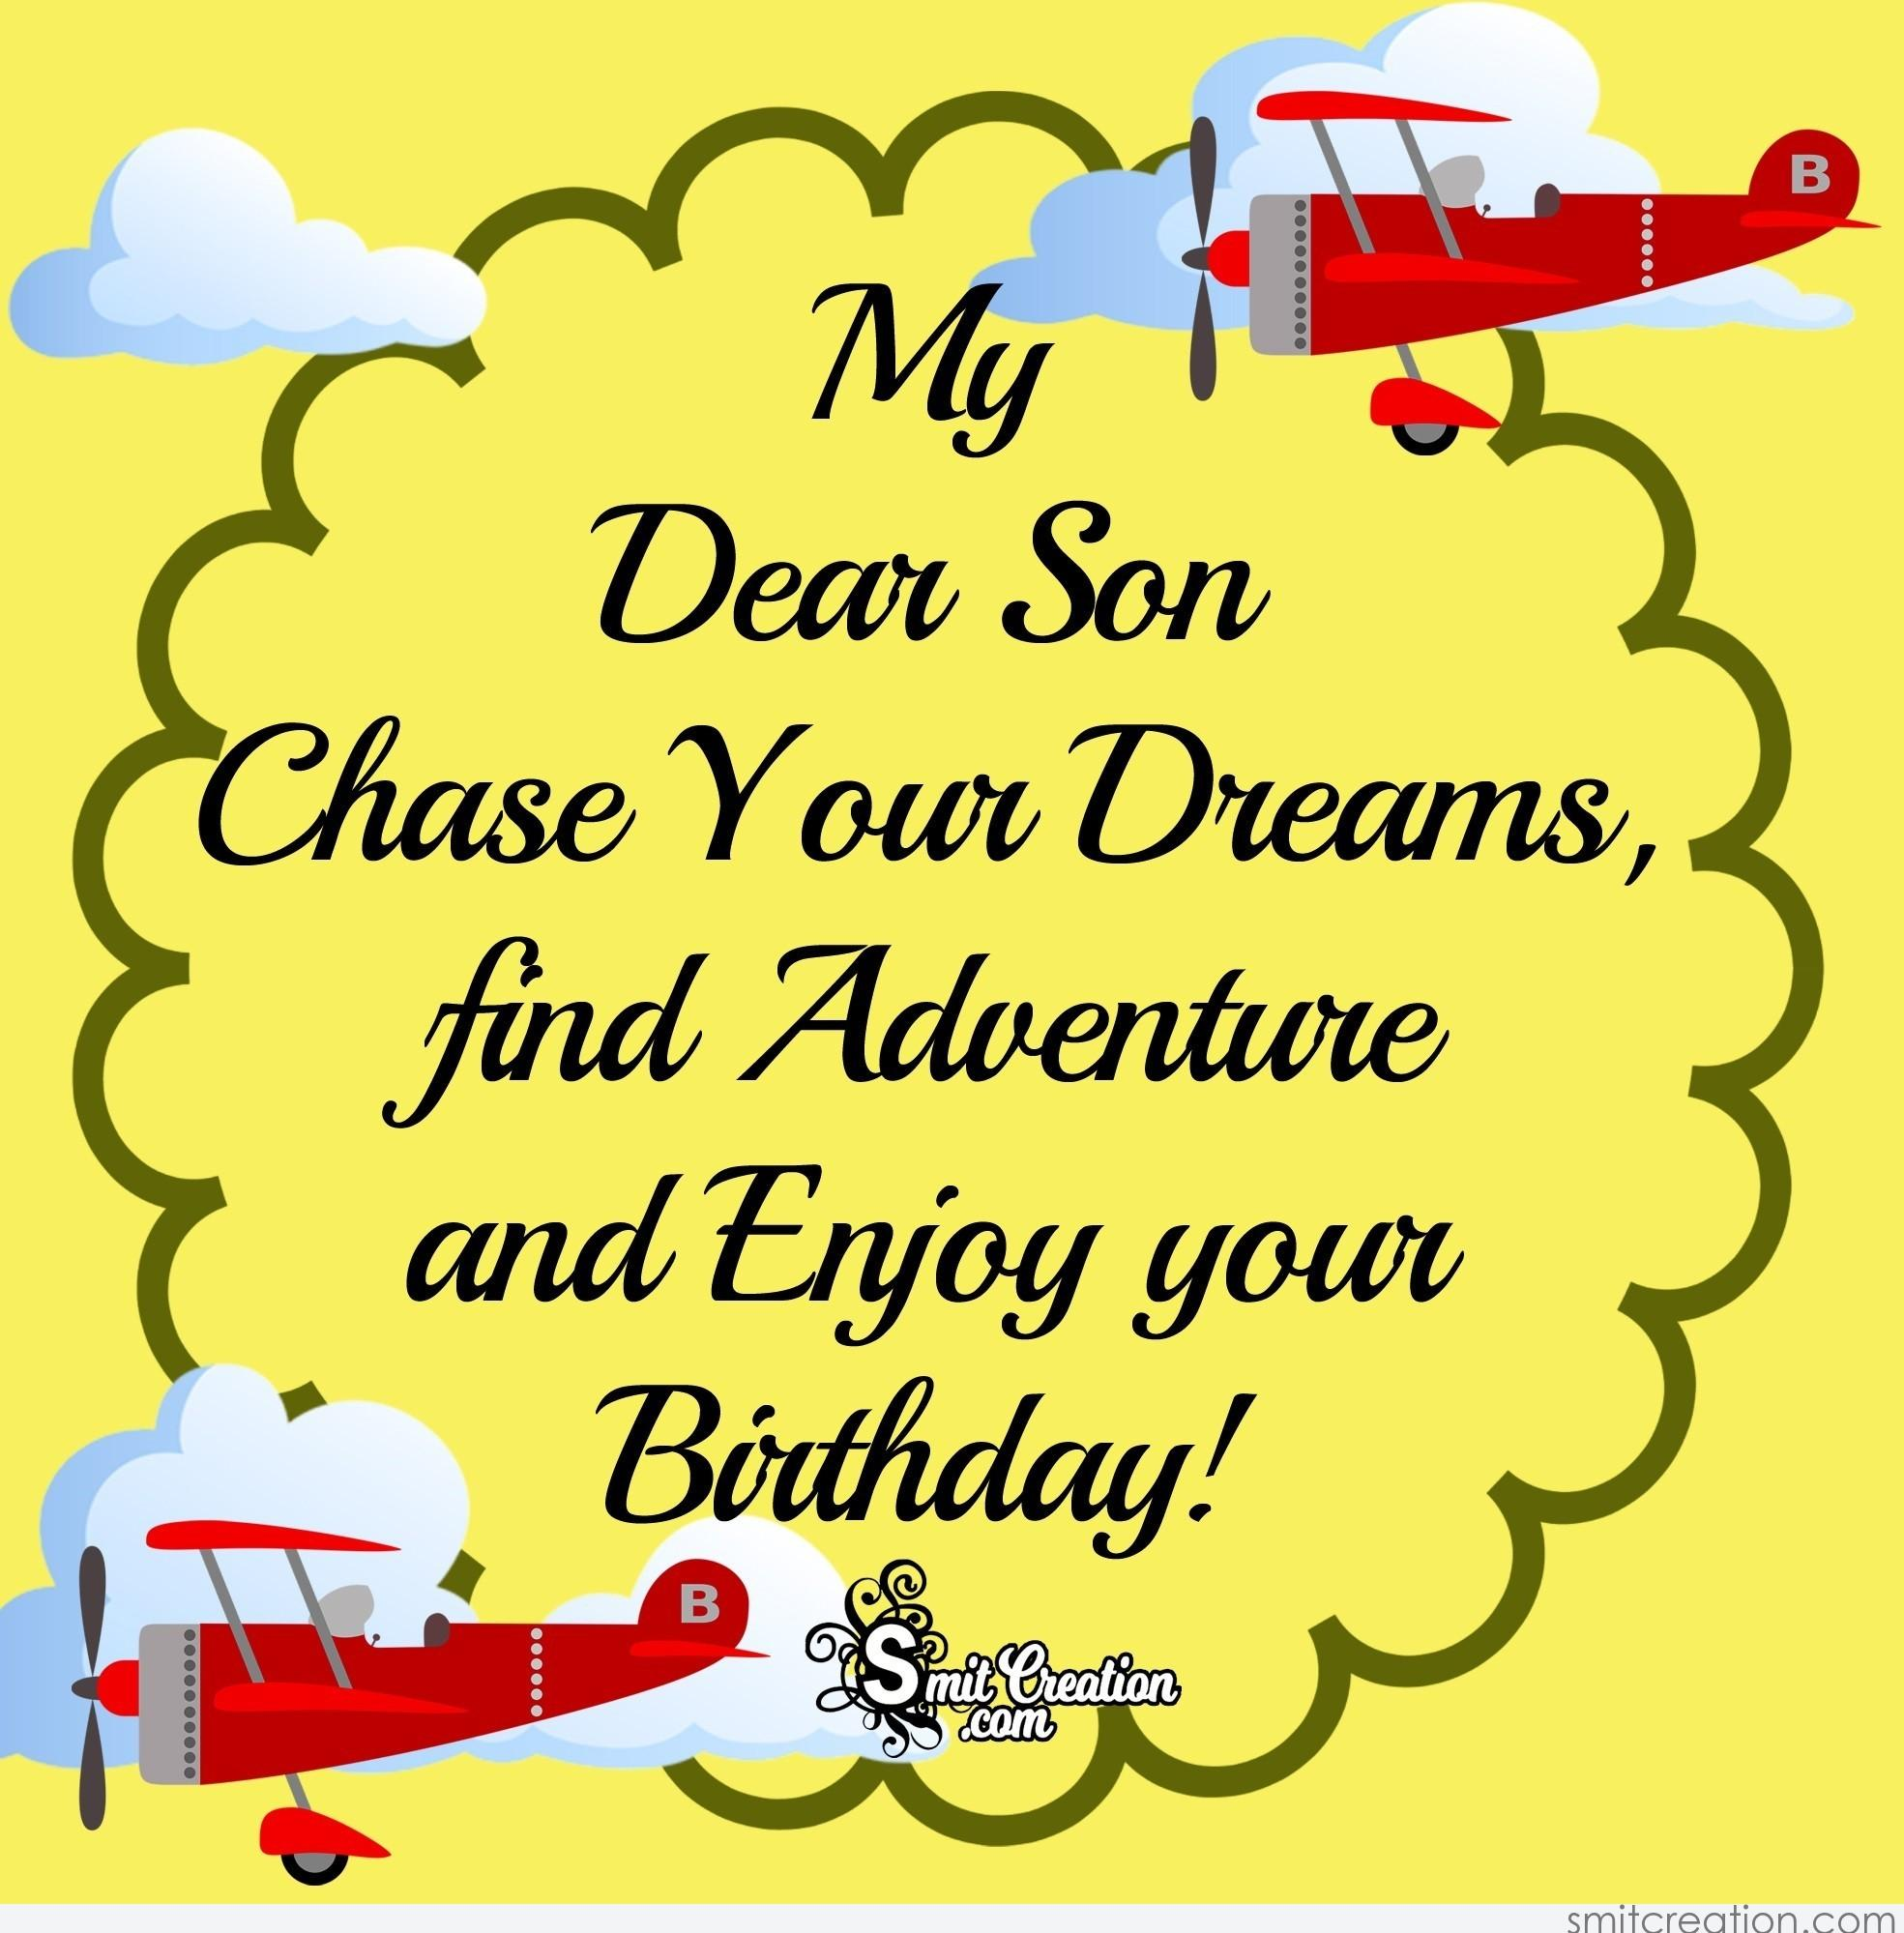 Phenomenal Birthday Wishes For Son Pictures And Graphics Smitcreation Com Funny Birthday Cards Online Alyptdamsfinfo